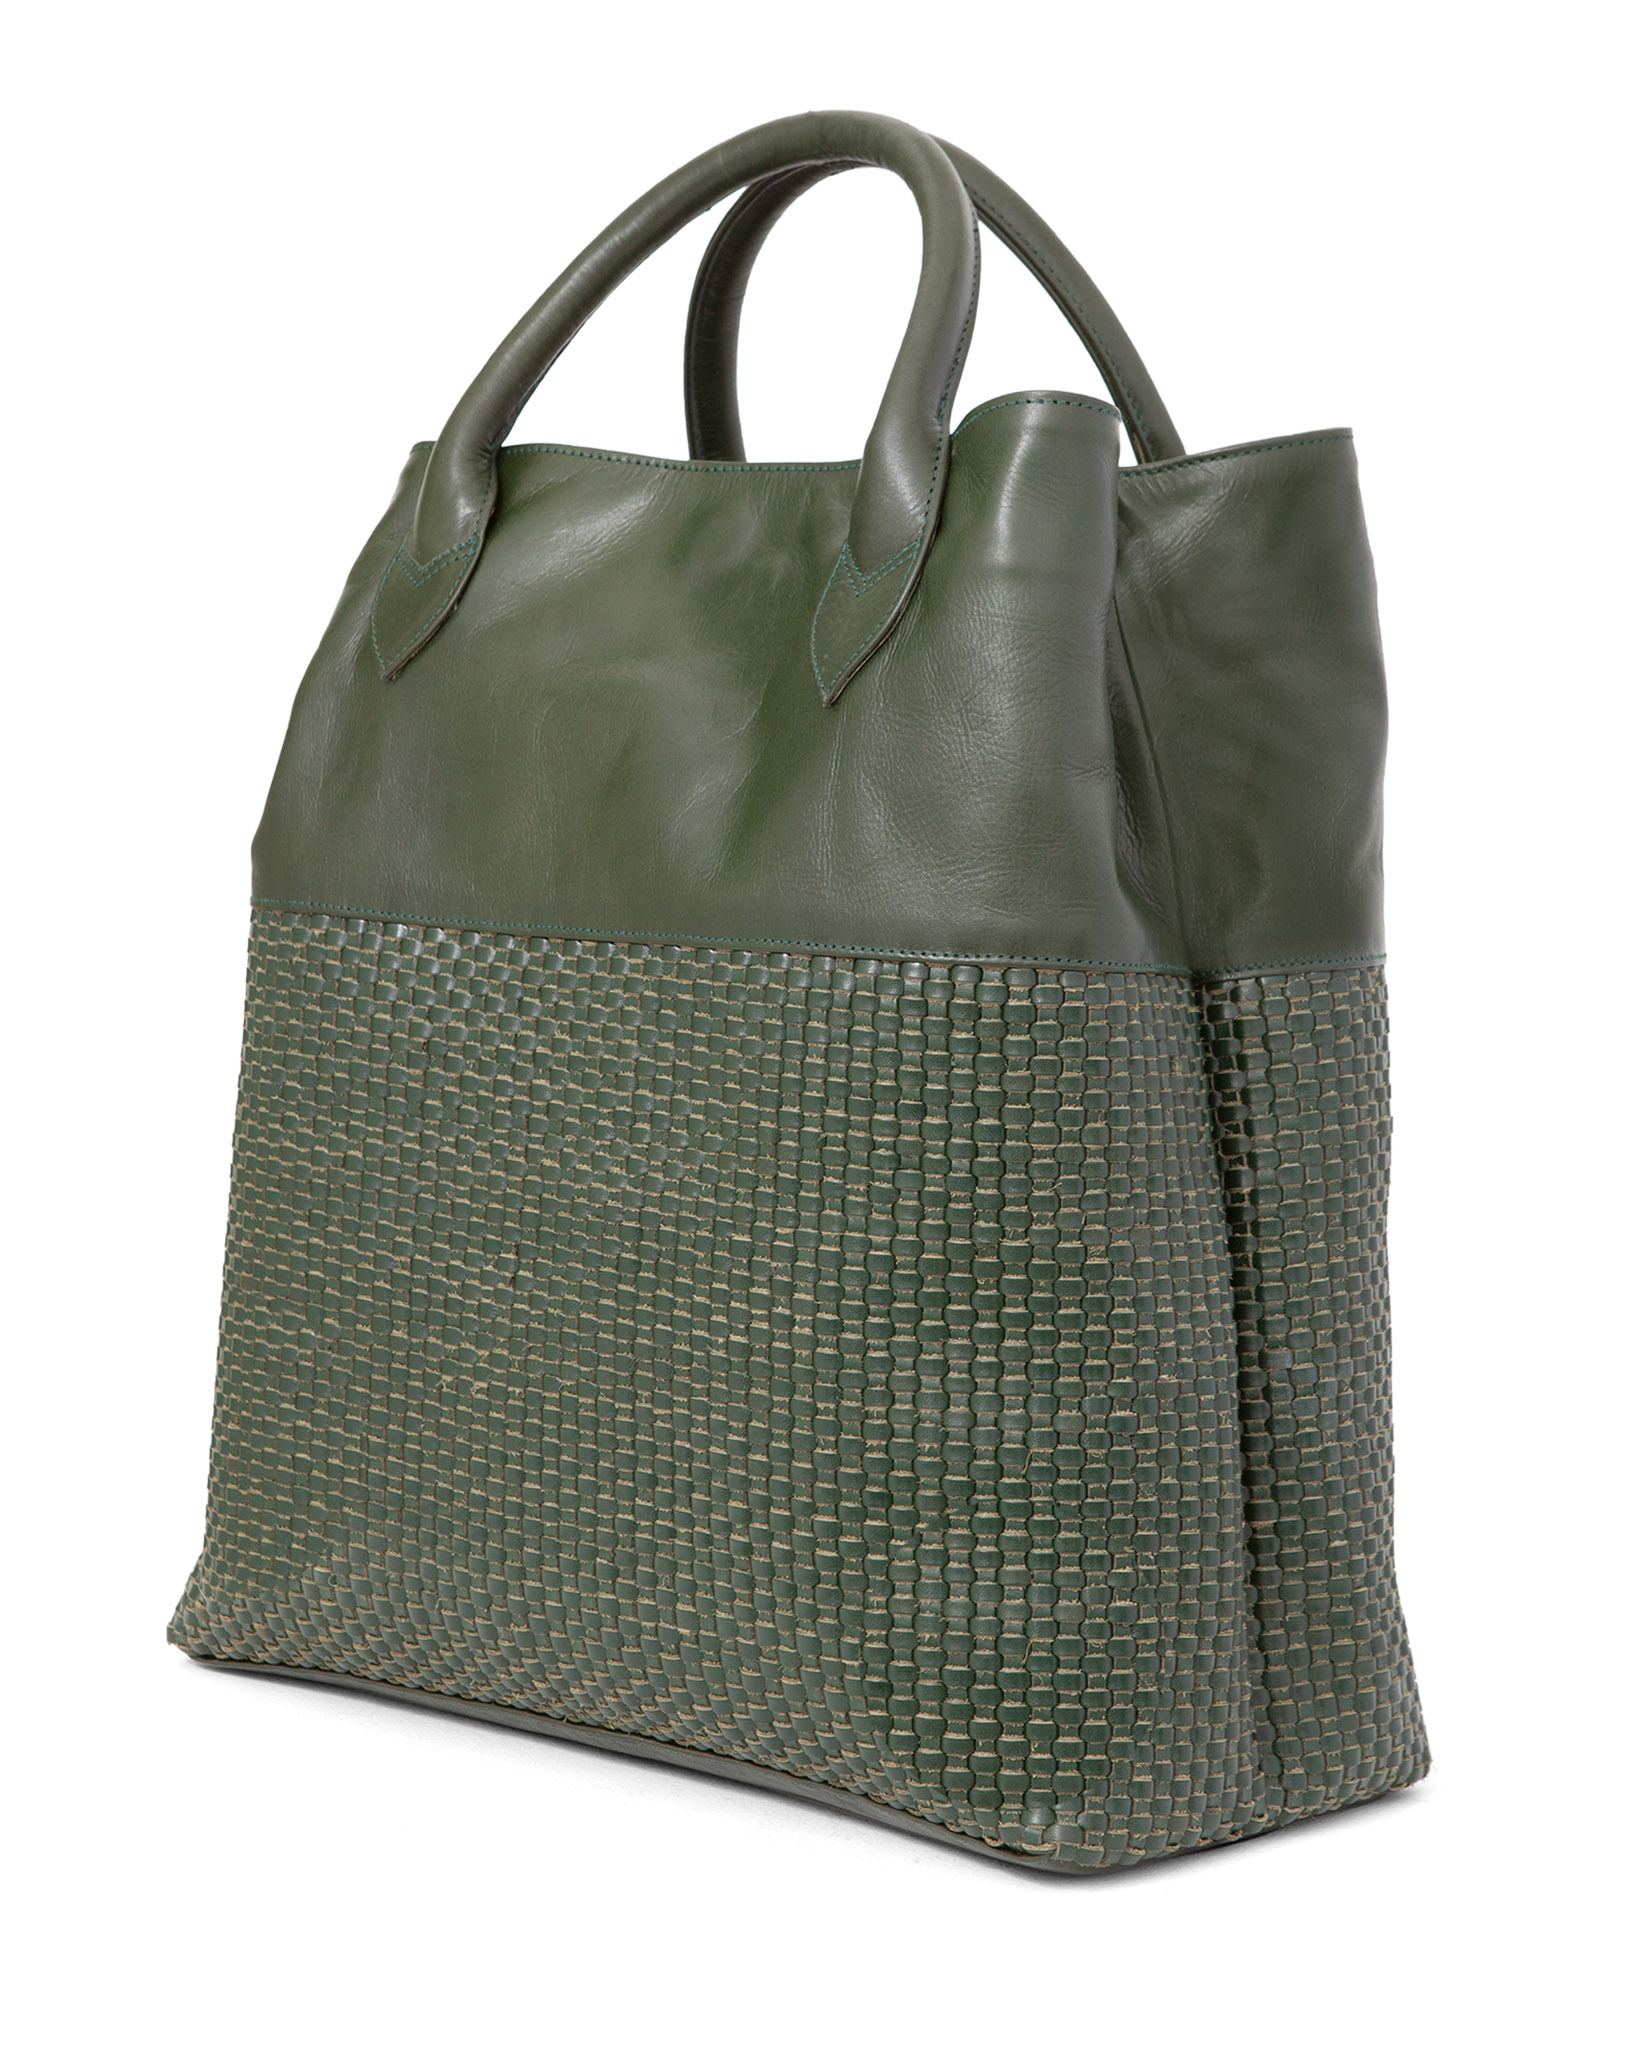 LADY HESTER TOTE